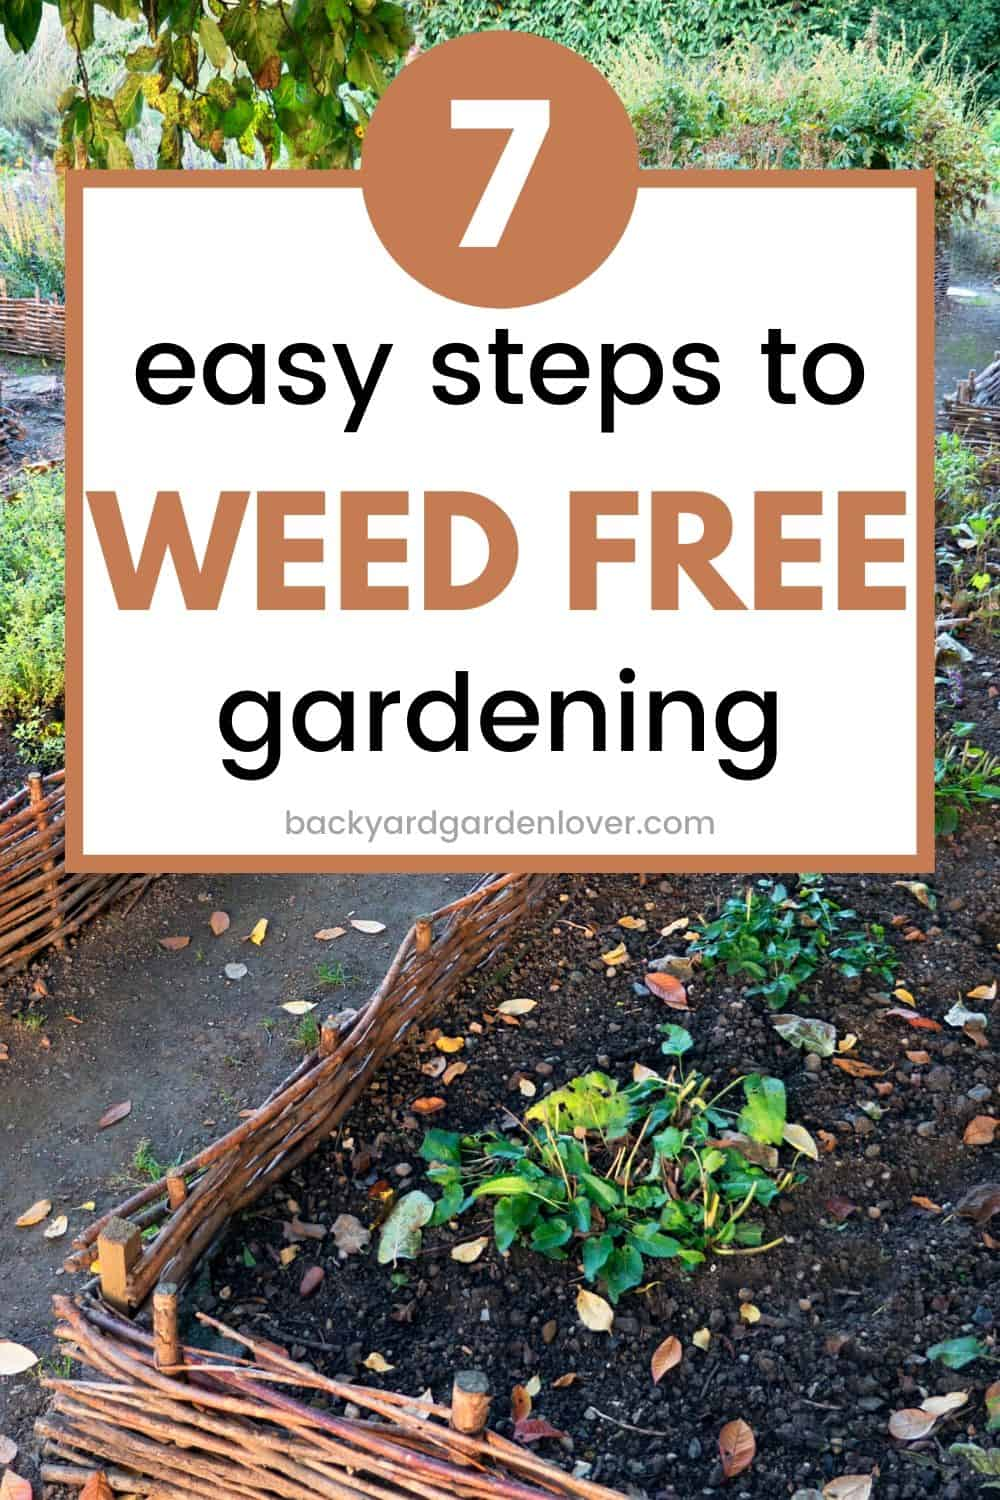 7 easy steps to weed-free gardening - Pinterest image